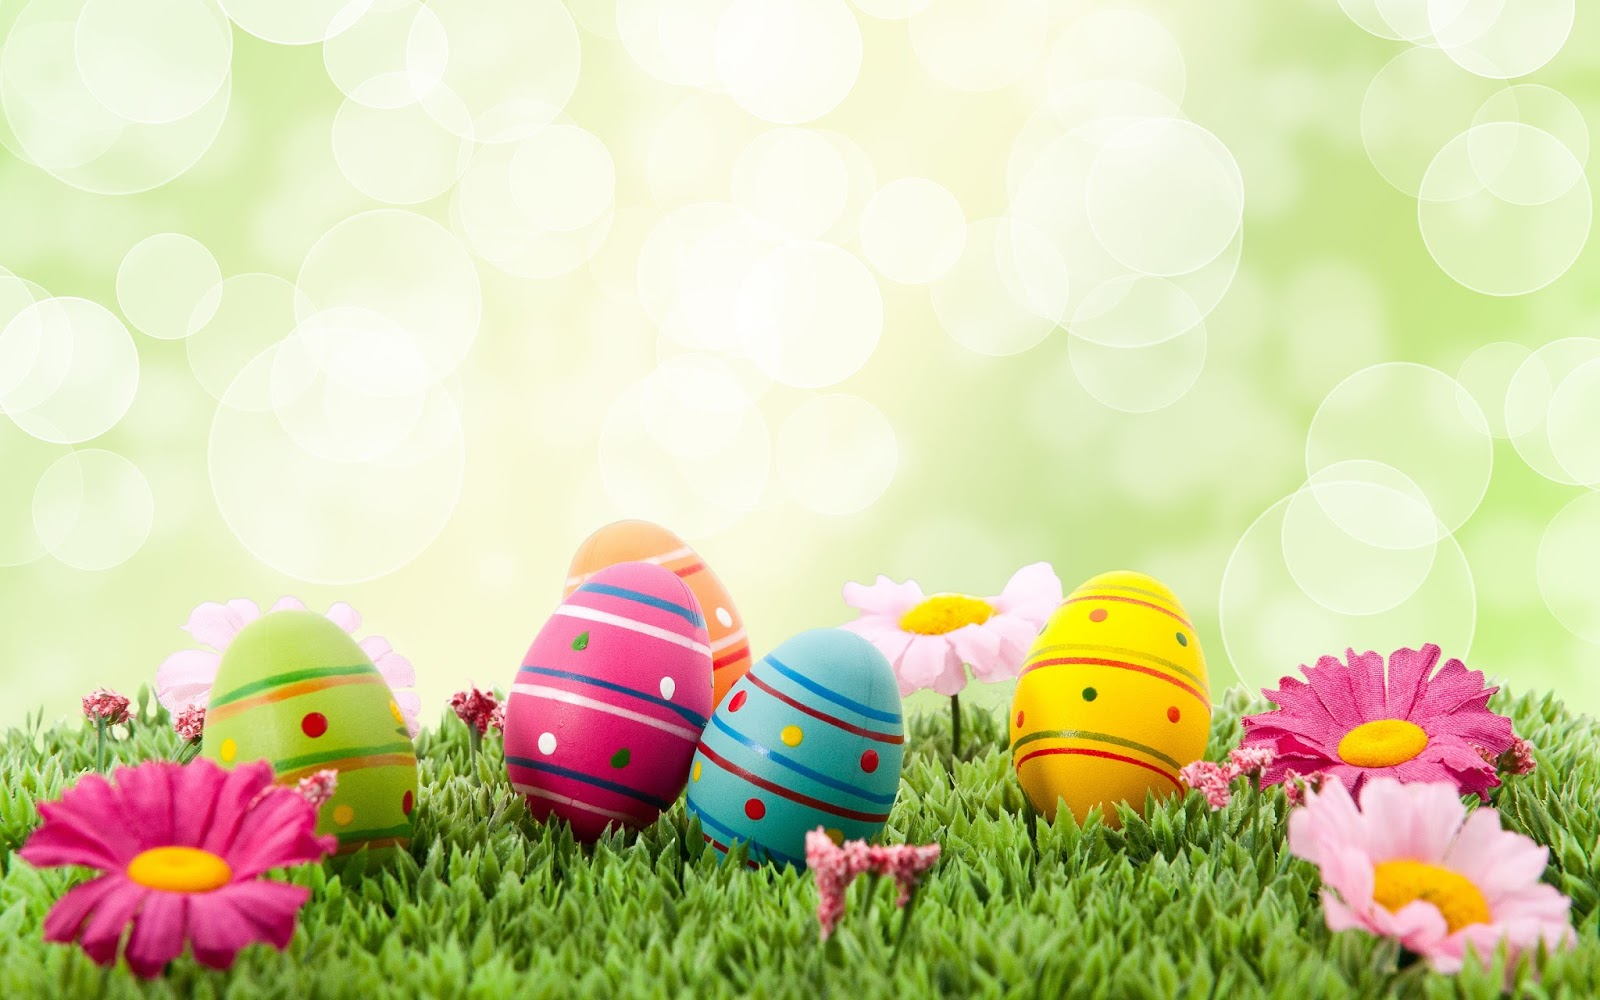 Happy Easter egg pictures and wallpapers 2021